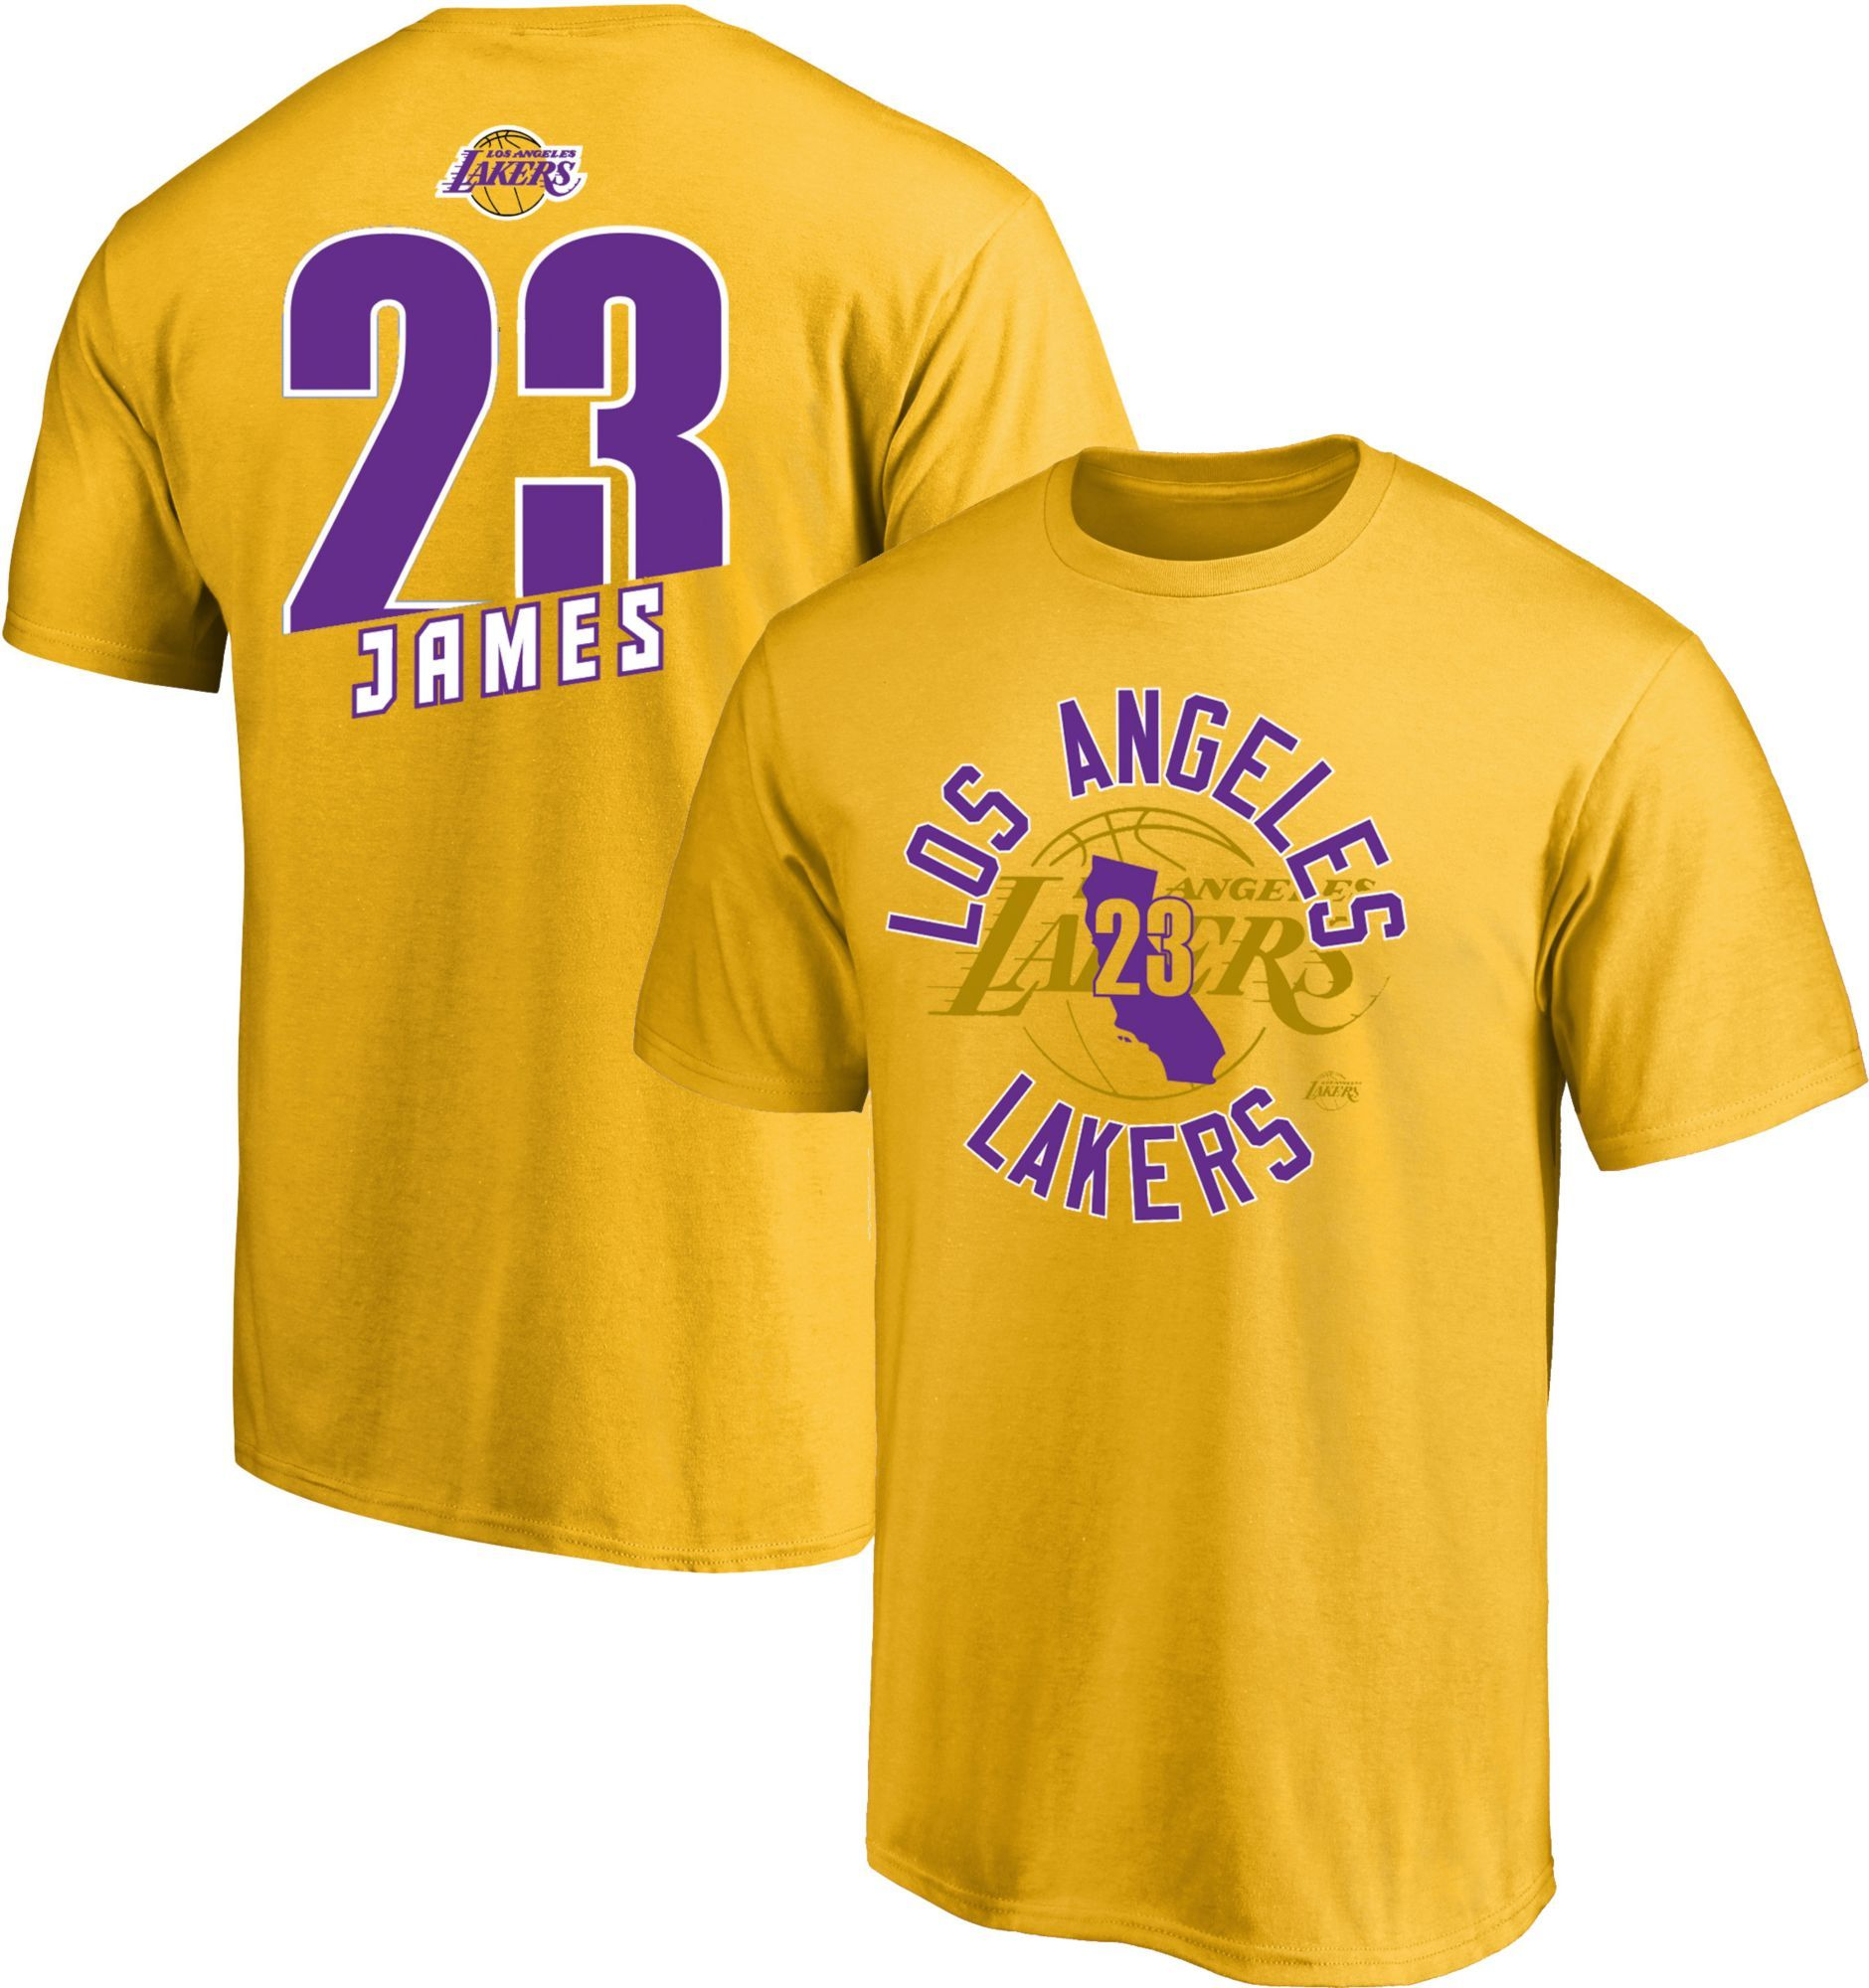 2a0cfd80a1f Majestic Men's Los Angeles Lakers LeBron James #23 Gold T-Shirt, Yellow